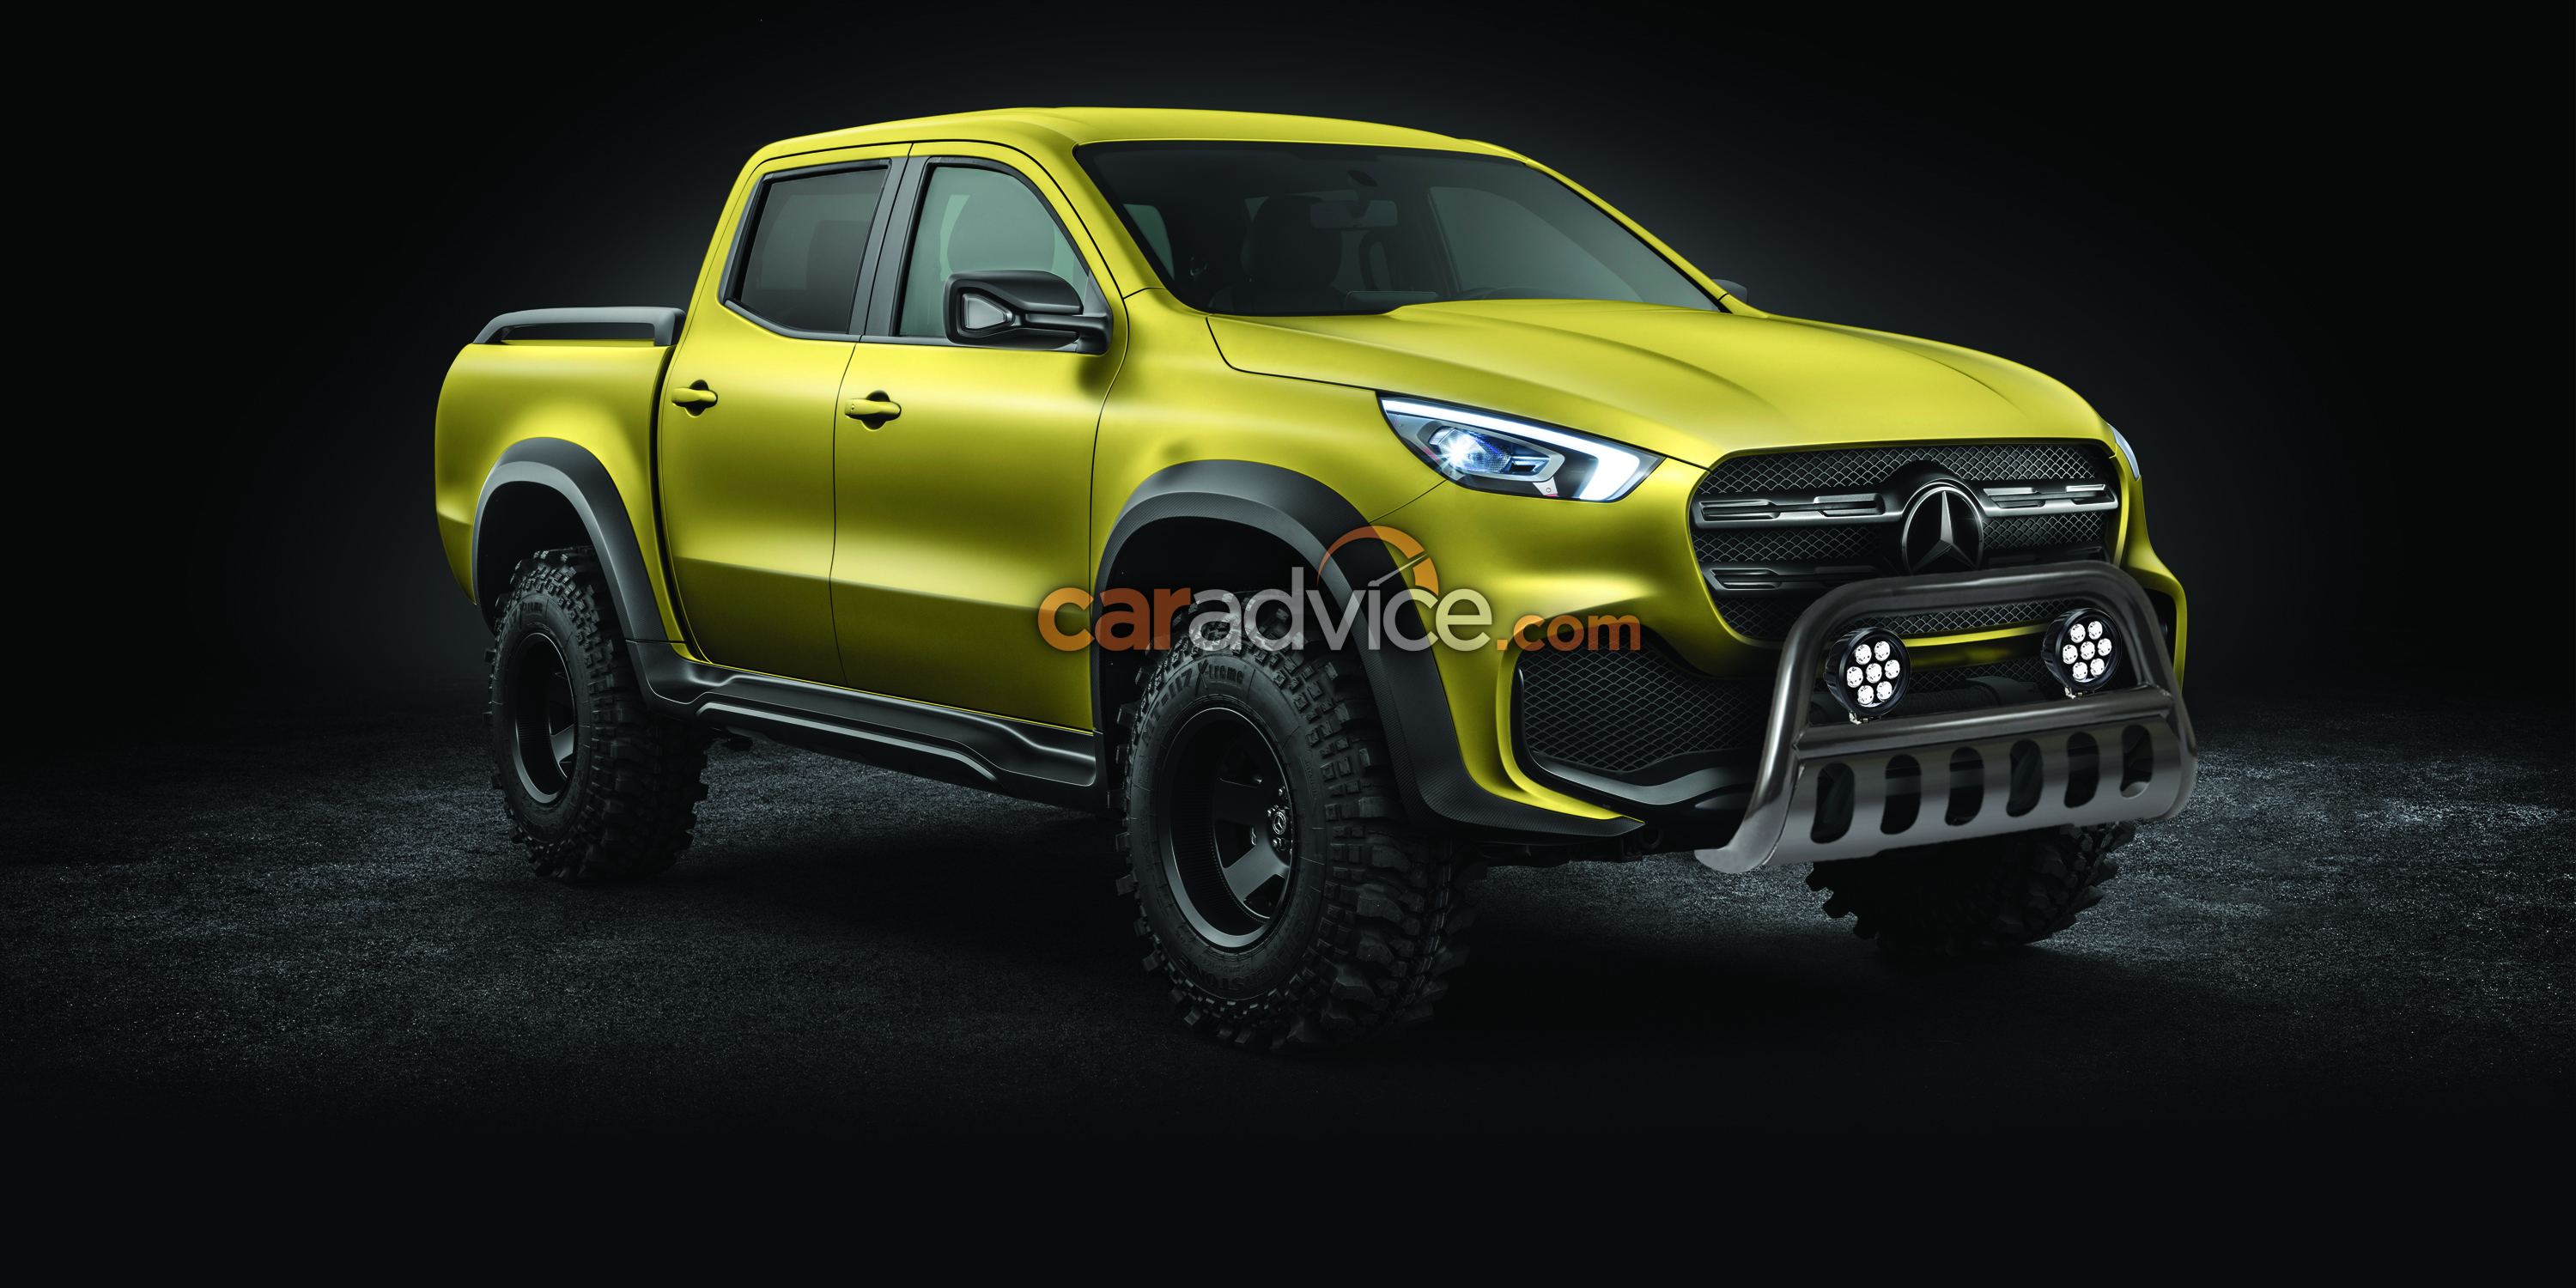 Mercedes Benz X Class Ute To Get Full Range Of Accessories